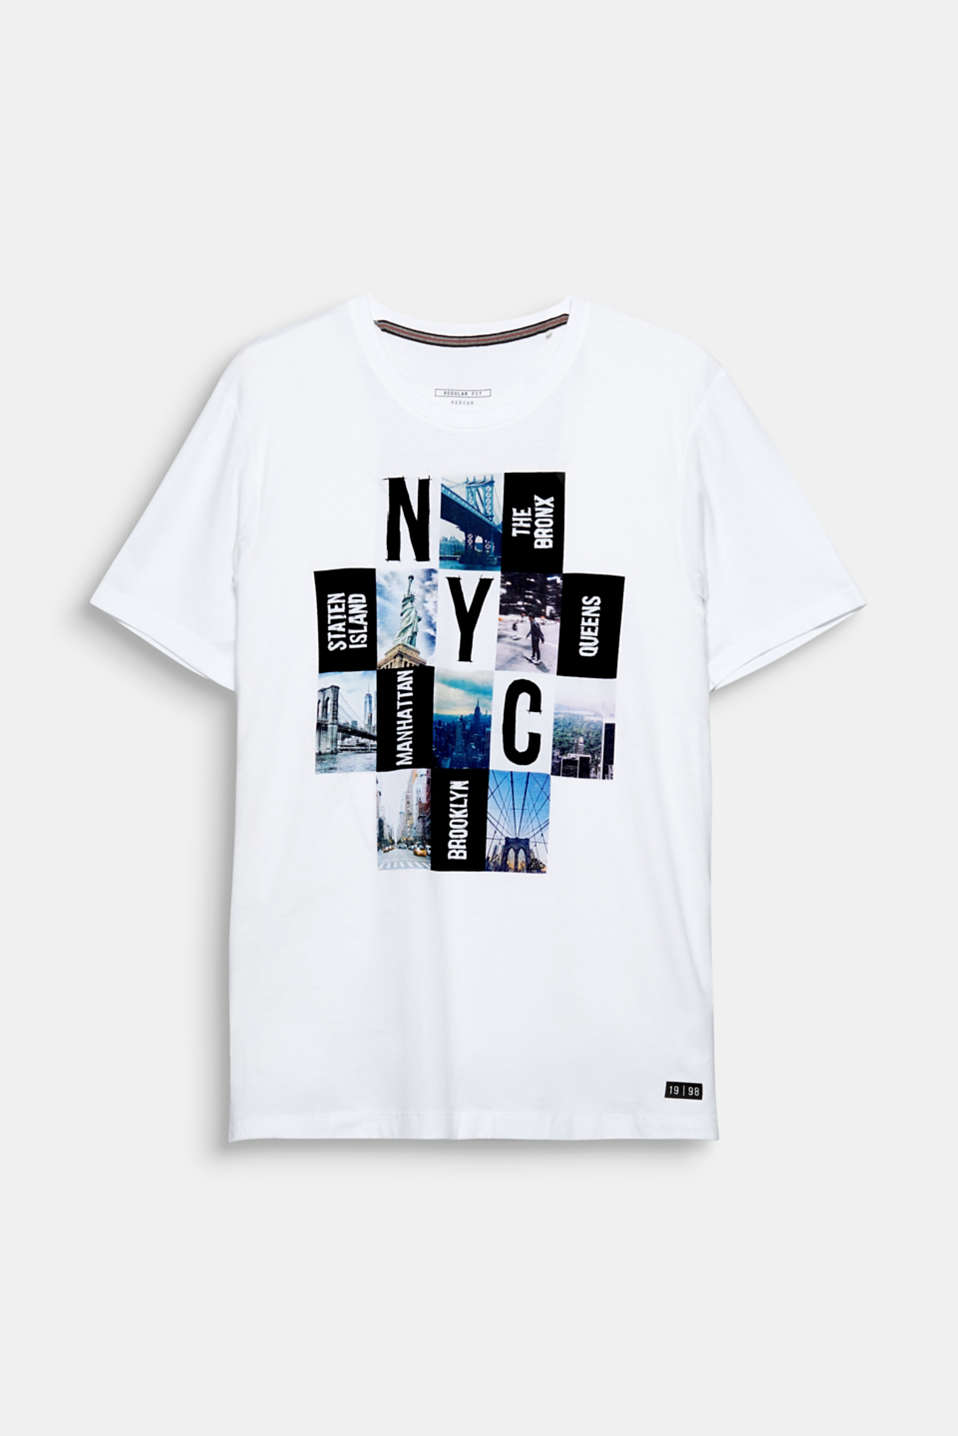 Empire State of Mind! Die coole New York-Illustration gibt diesem Shirt ein cosmopolitisches Flair.